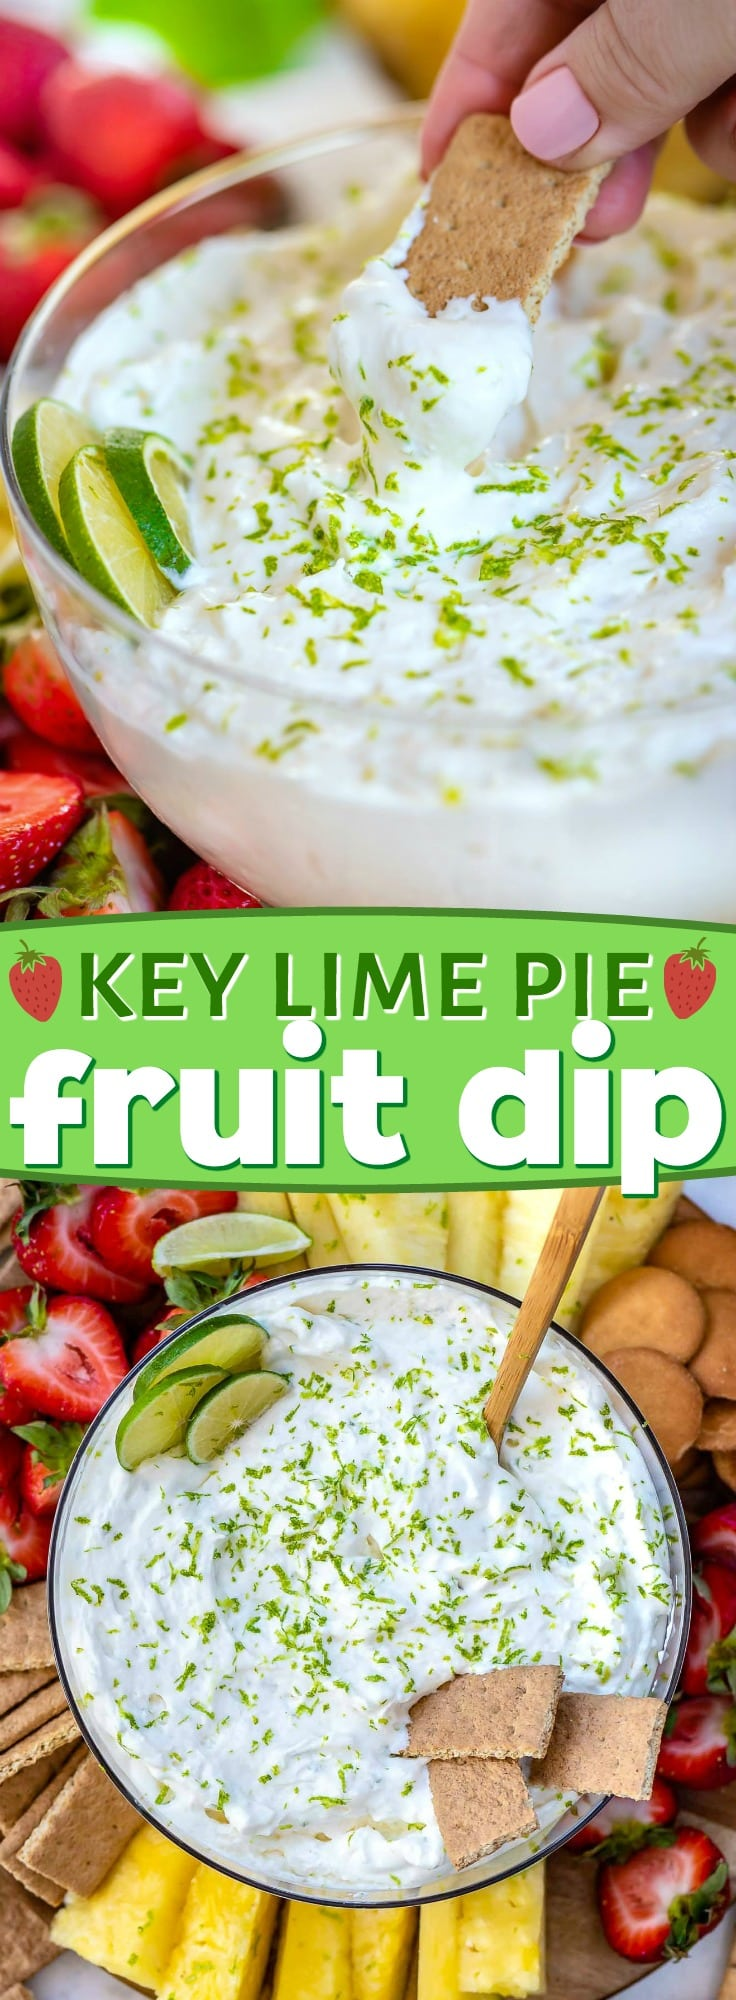 fruit-dip-key-lime-pie-collage